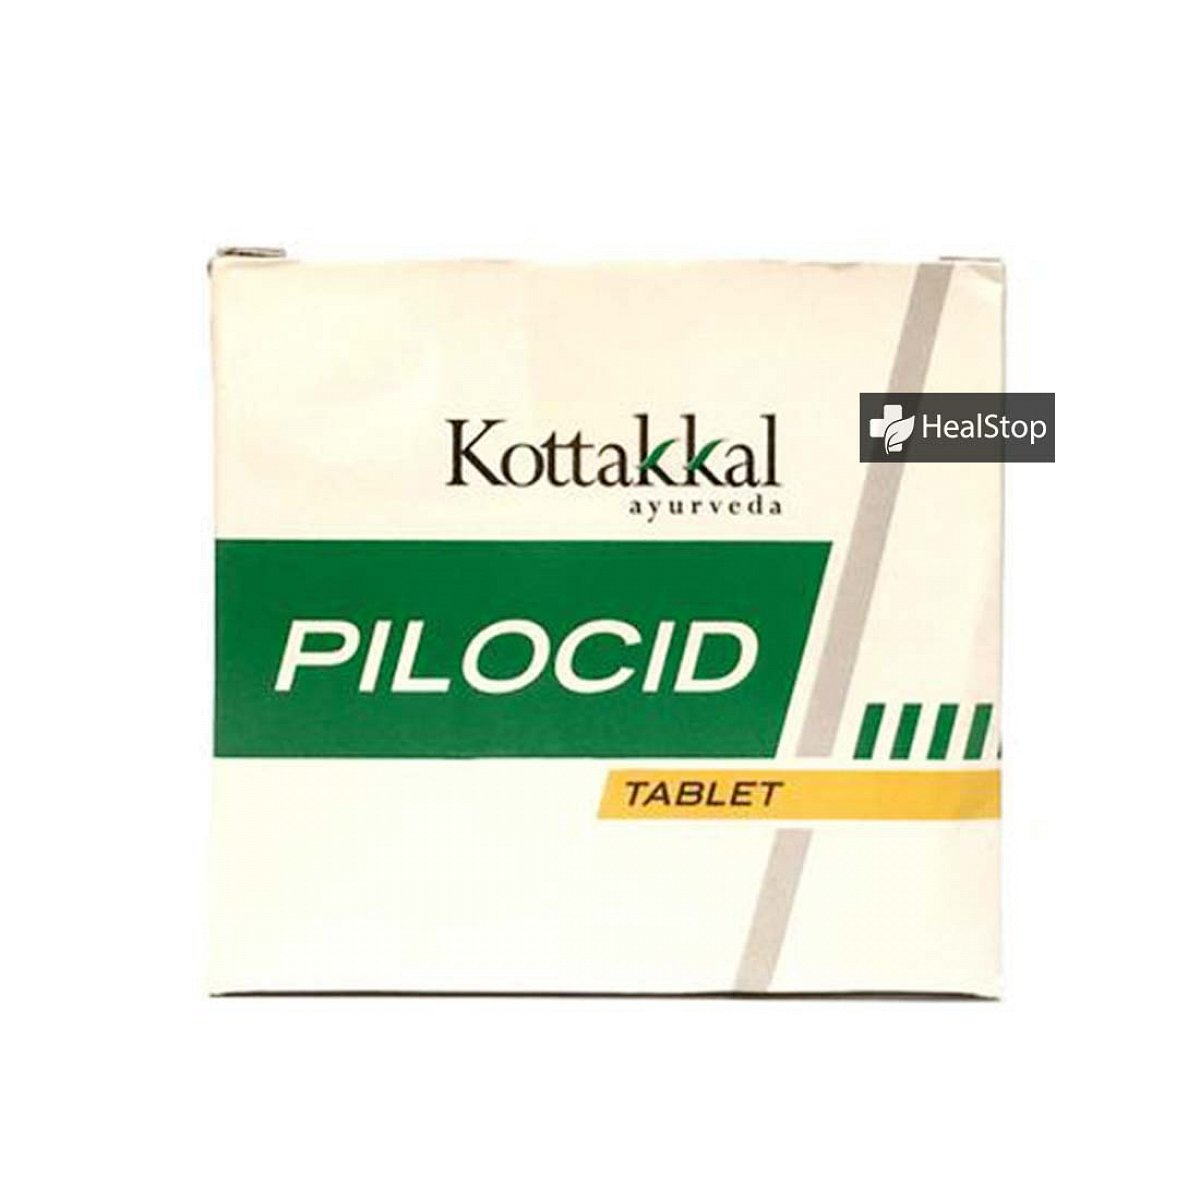 Pilocid Tablet, 25gm